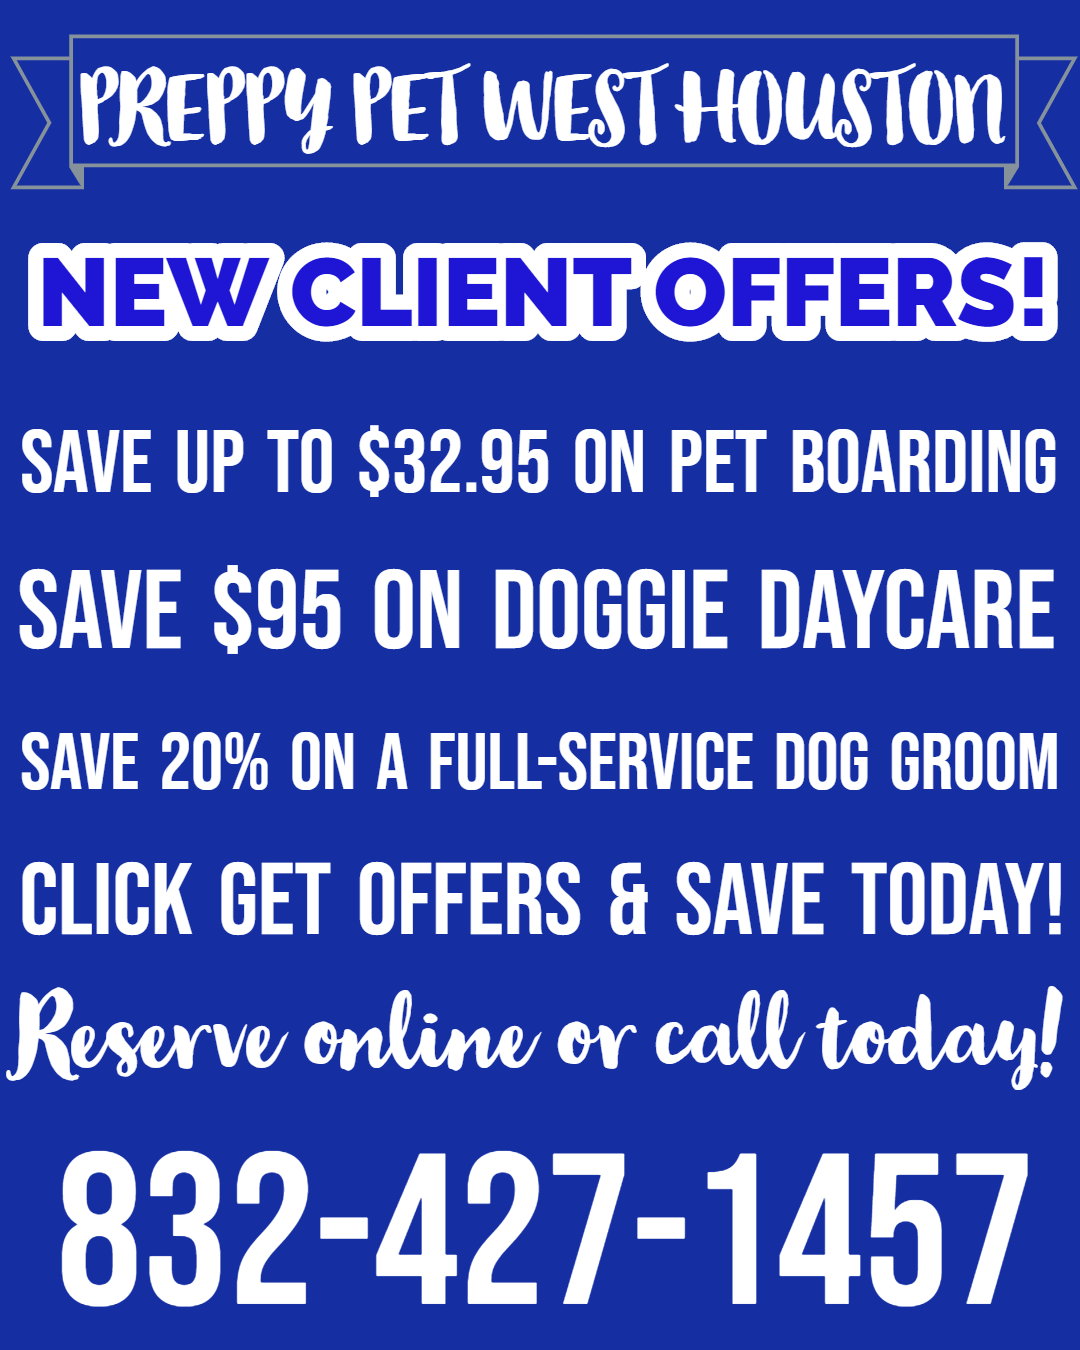 Preppy Pet West Houston | New Client Offers